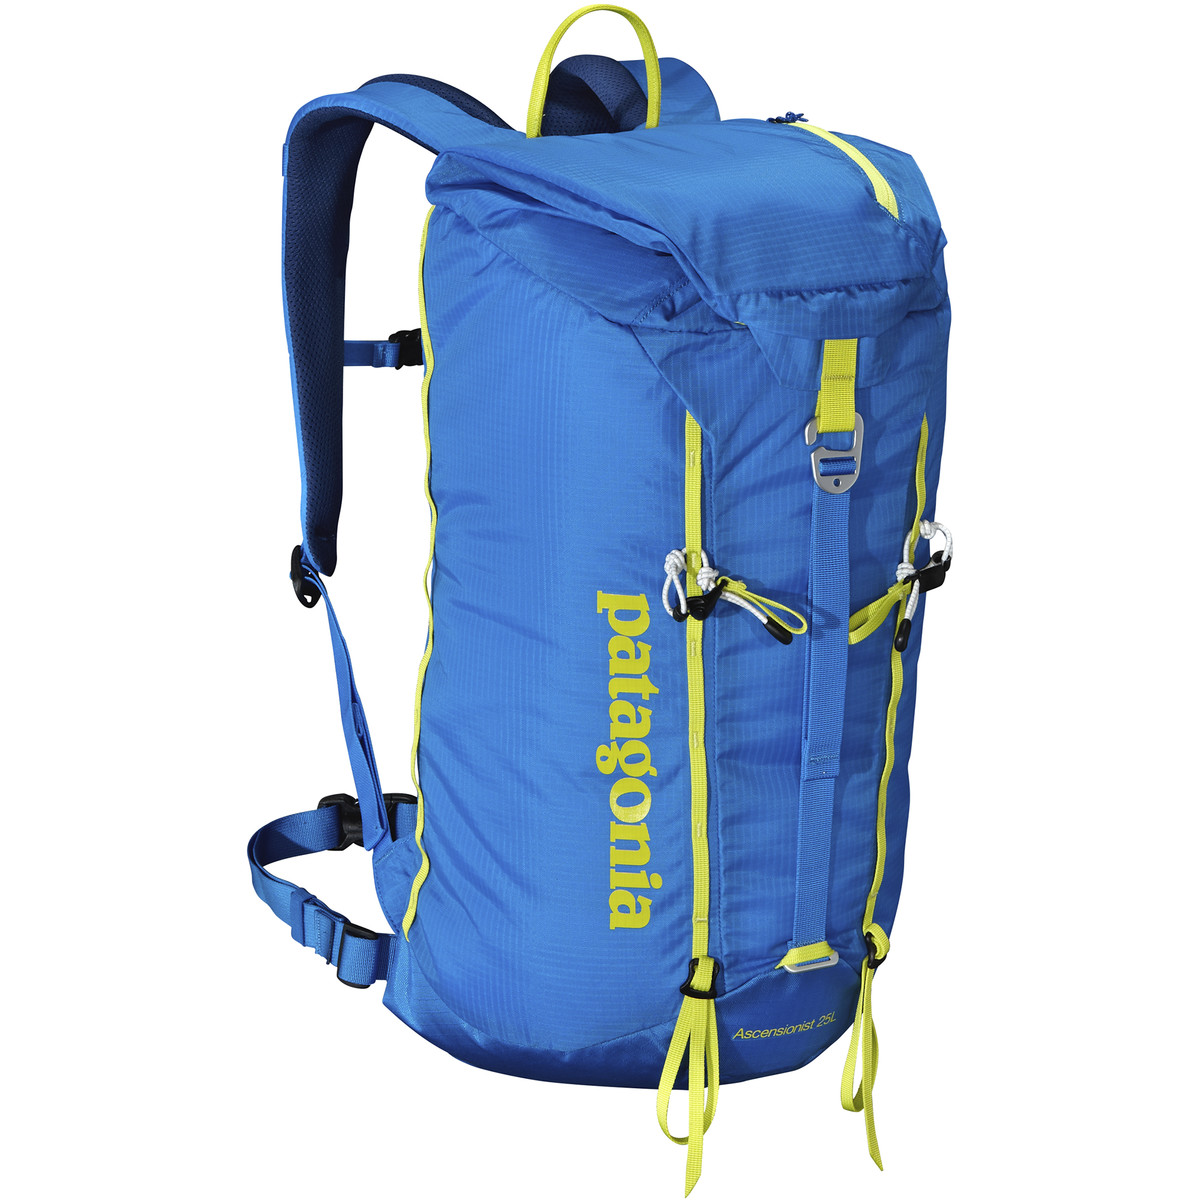 Patagonia Ascensionist 25L